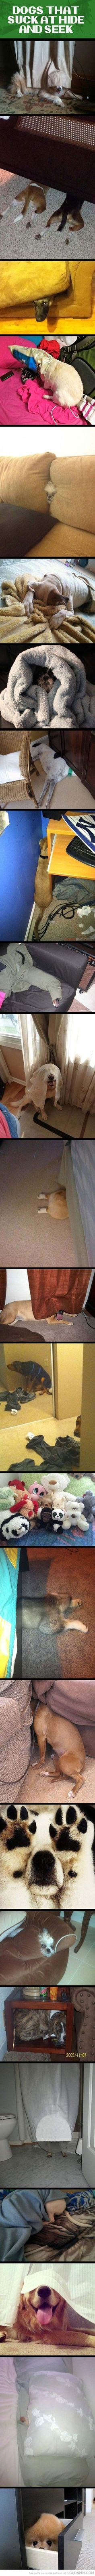 Dogs that are really bad at hide and seek.